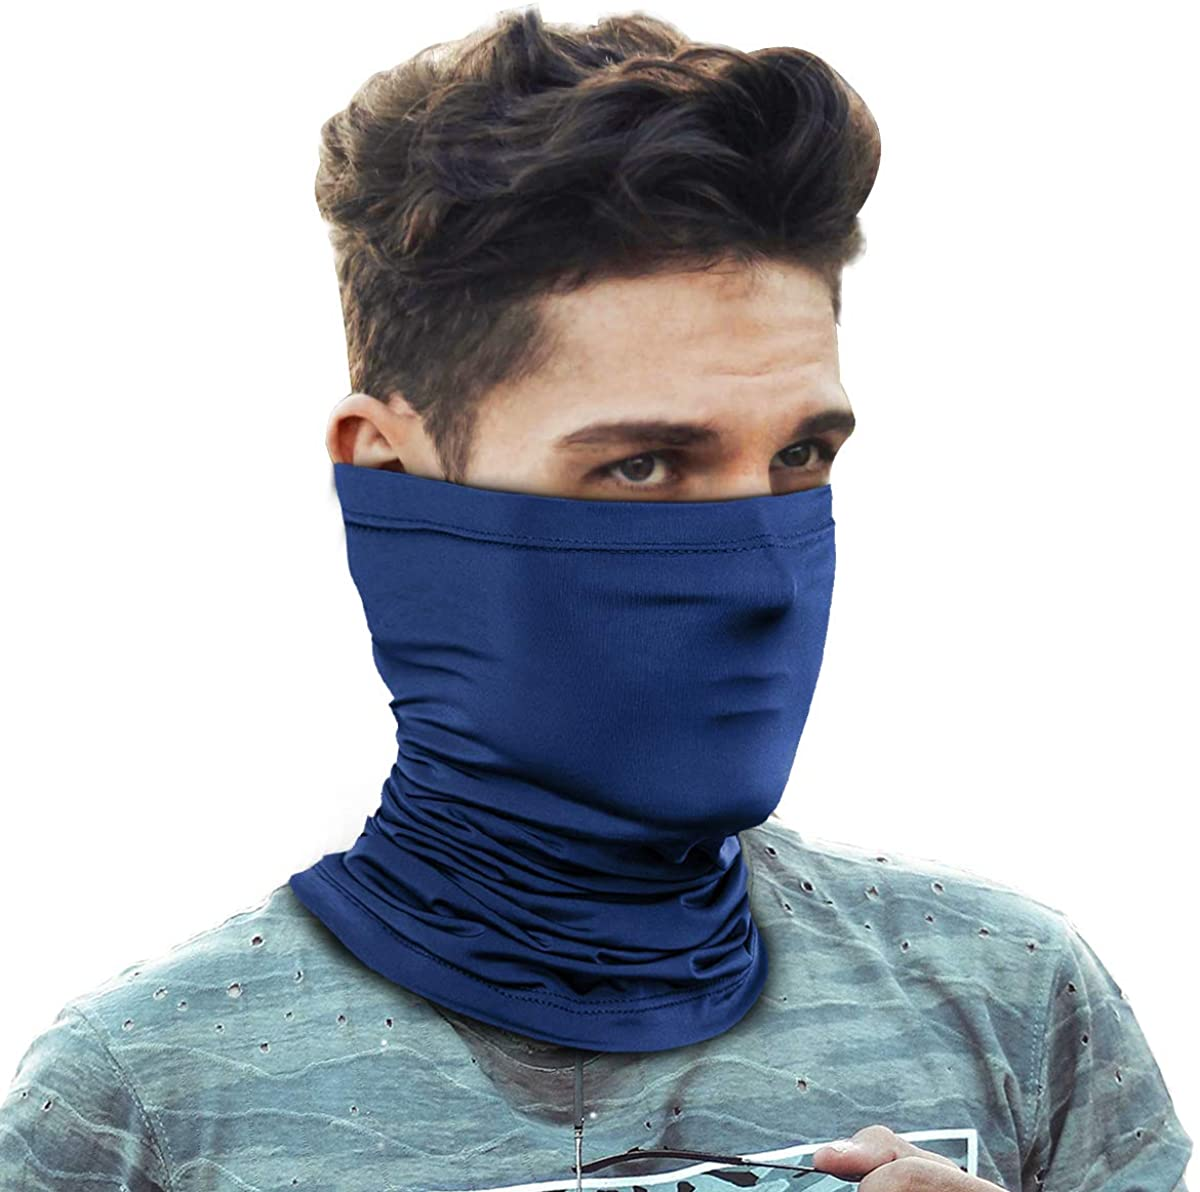 Face Mask Reusable Bandana Neck Gaiters Sun UV Protection Face Cover Scarf Dust Wind Balaclava for Fishing Hiking